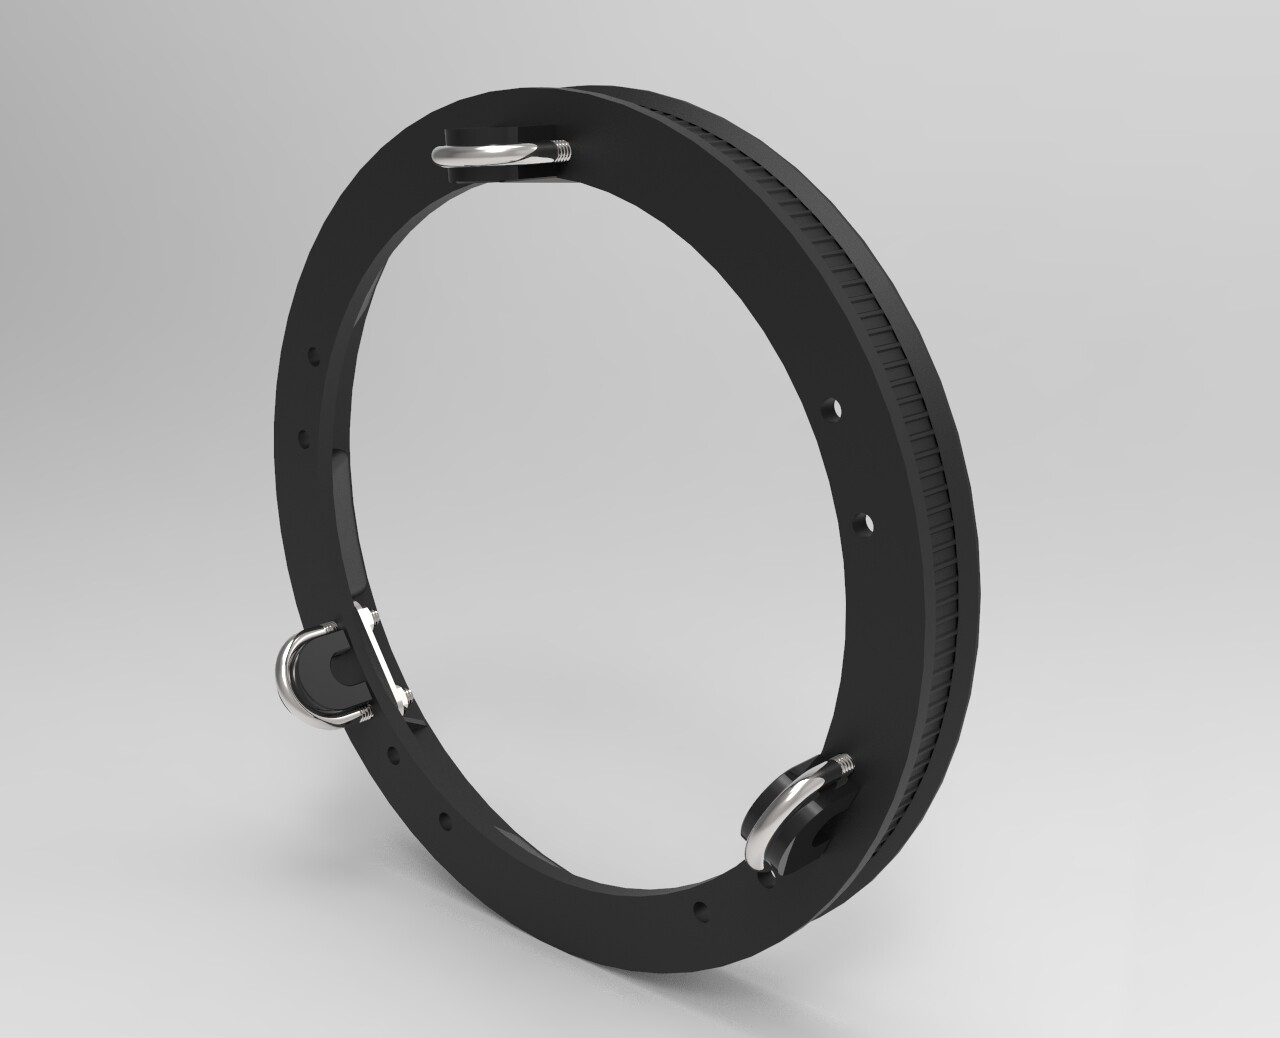 Wheel Drum for Autohelm 3000 / ST3000 with Improved Belt Grips